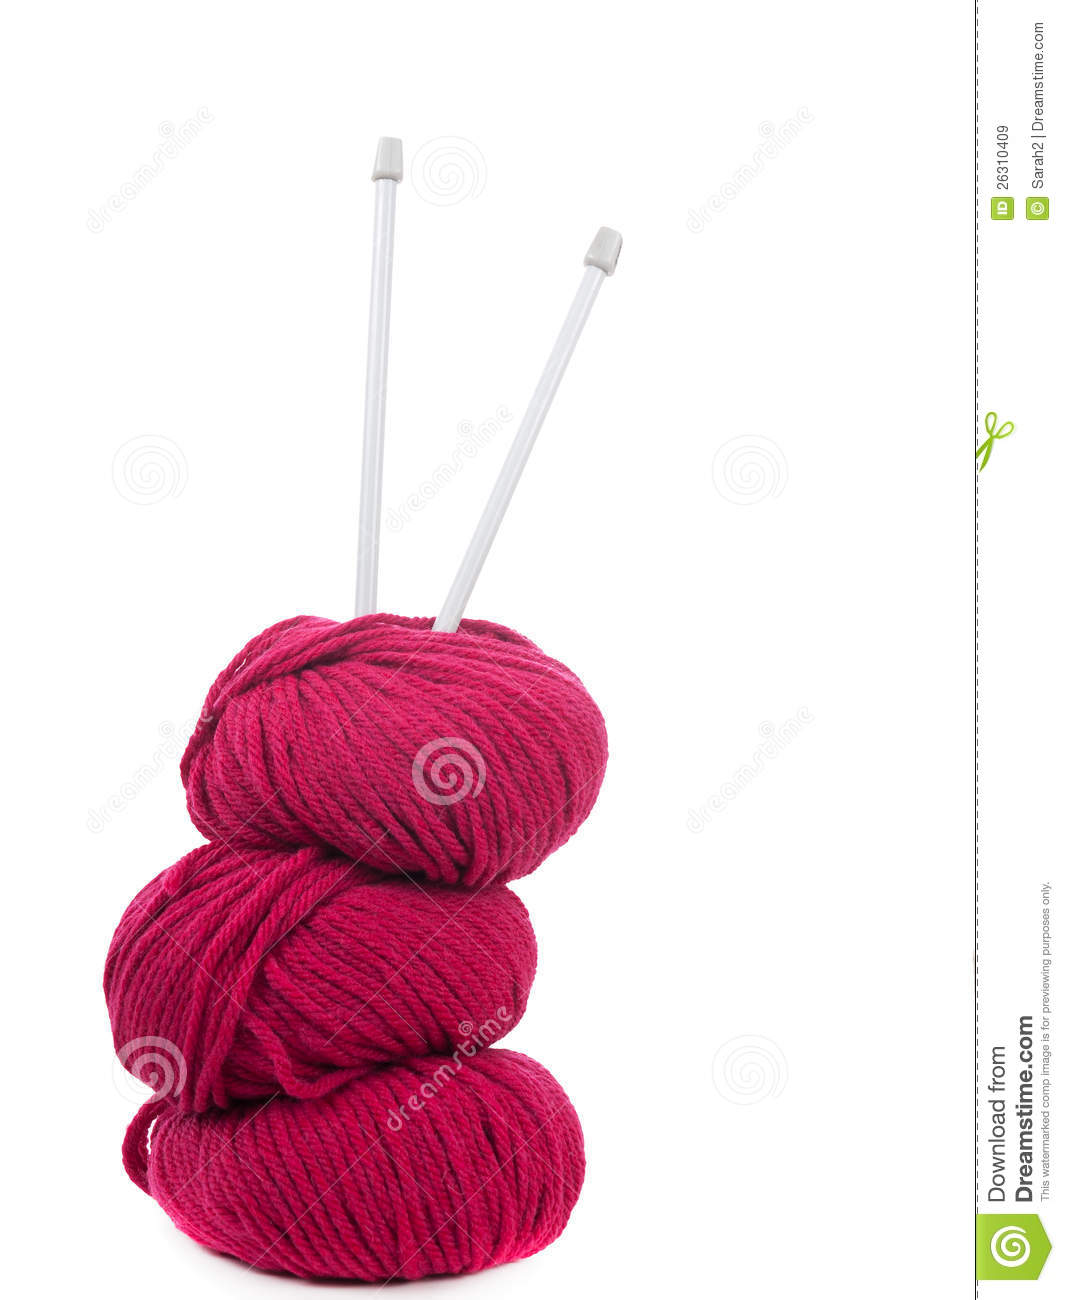 Knitting Needles And Yarn Weight : Knitting yarn and needles vertical composition royalty